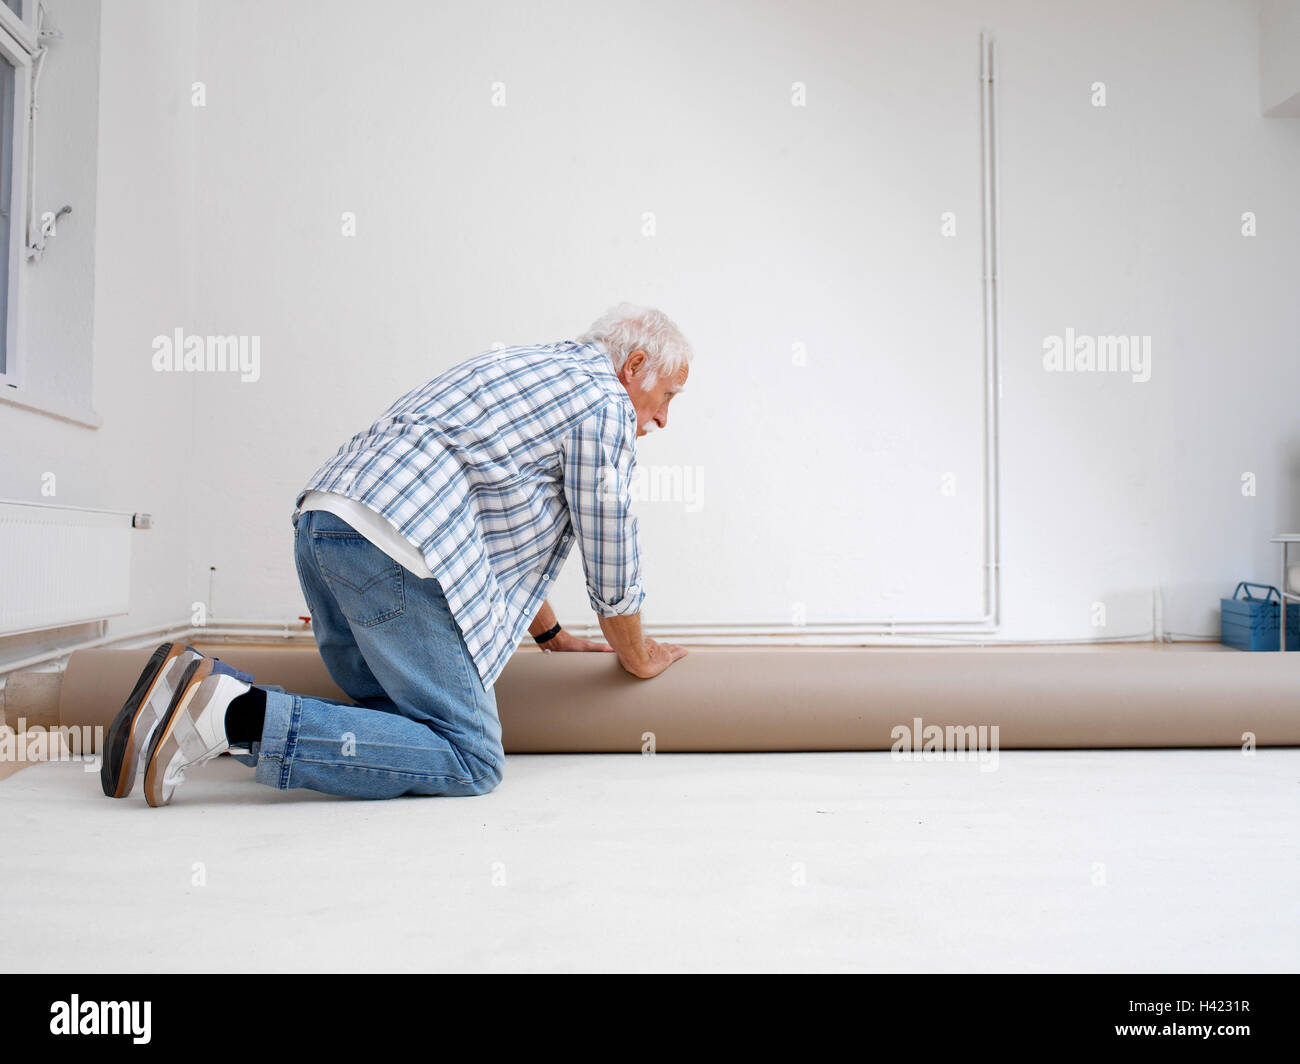 Flat renovation works senior carpet lay 60 70 years man fit agile old person retirement age best age carpeted floor floor coverings lay out do it yourselfers do it yourself renovate do it yourself solutioingenieria Gallery